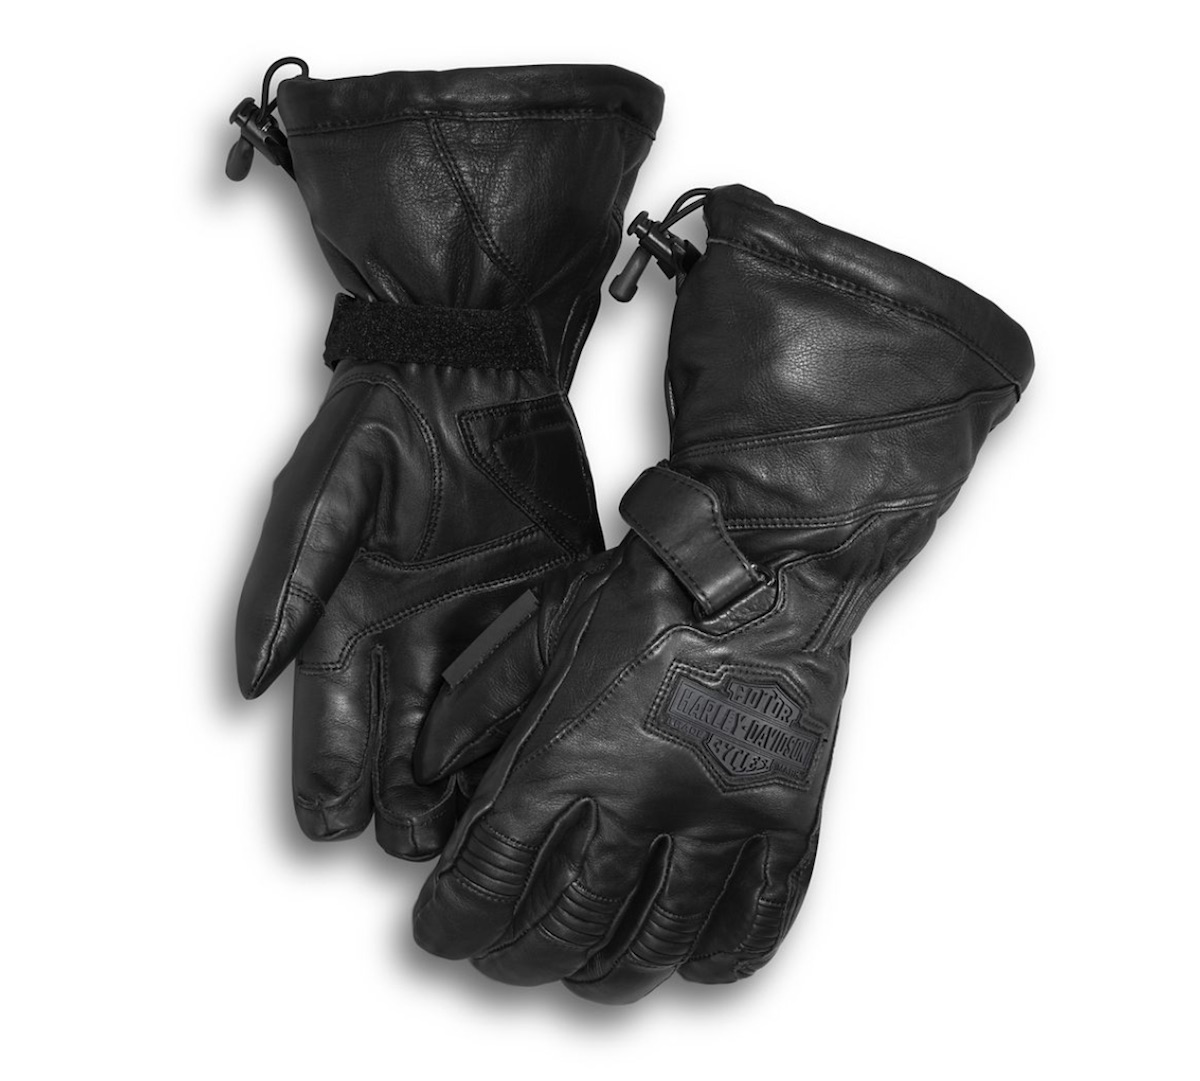 Circuit Waterproof Gauntlet Gloves